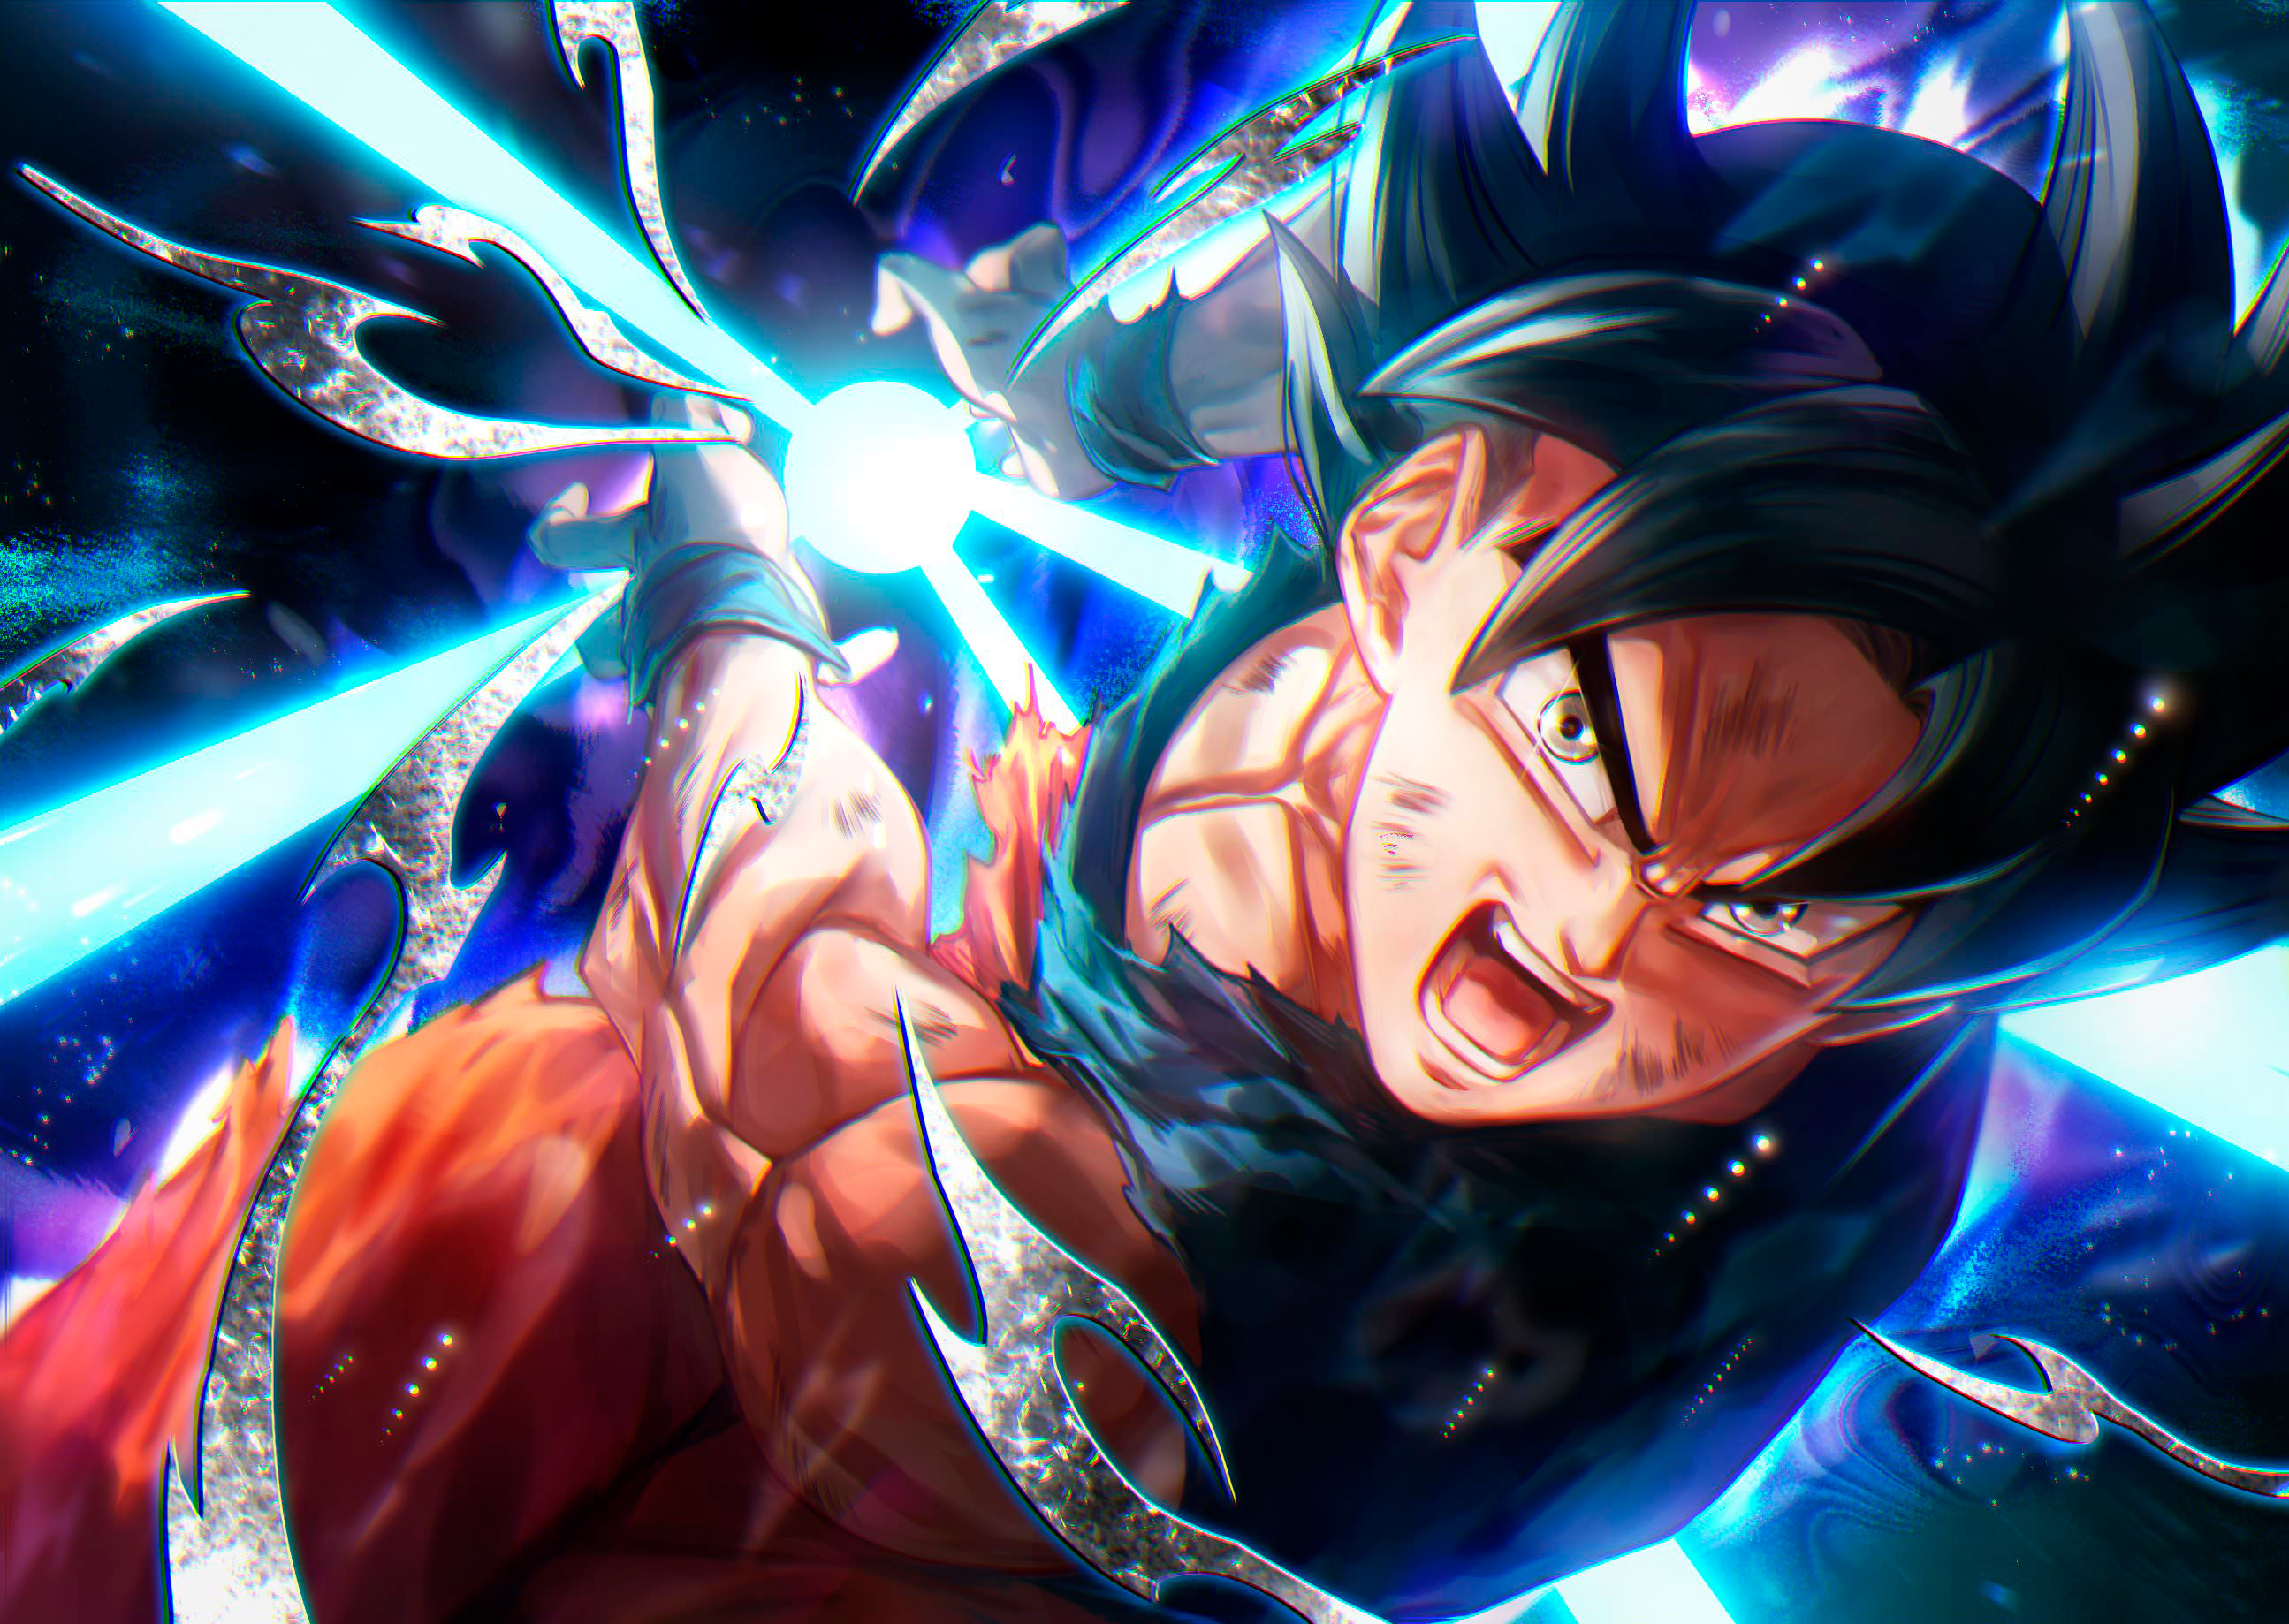 Goku In Dragon Ball Super Anime 4k Hd Anime 4k Wallpapers Images Backgrounds Photos And Pictures